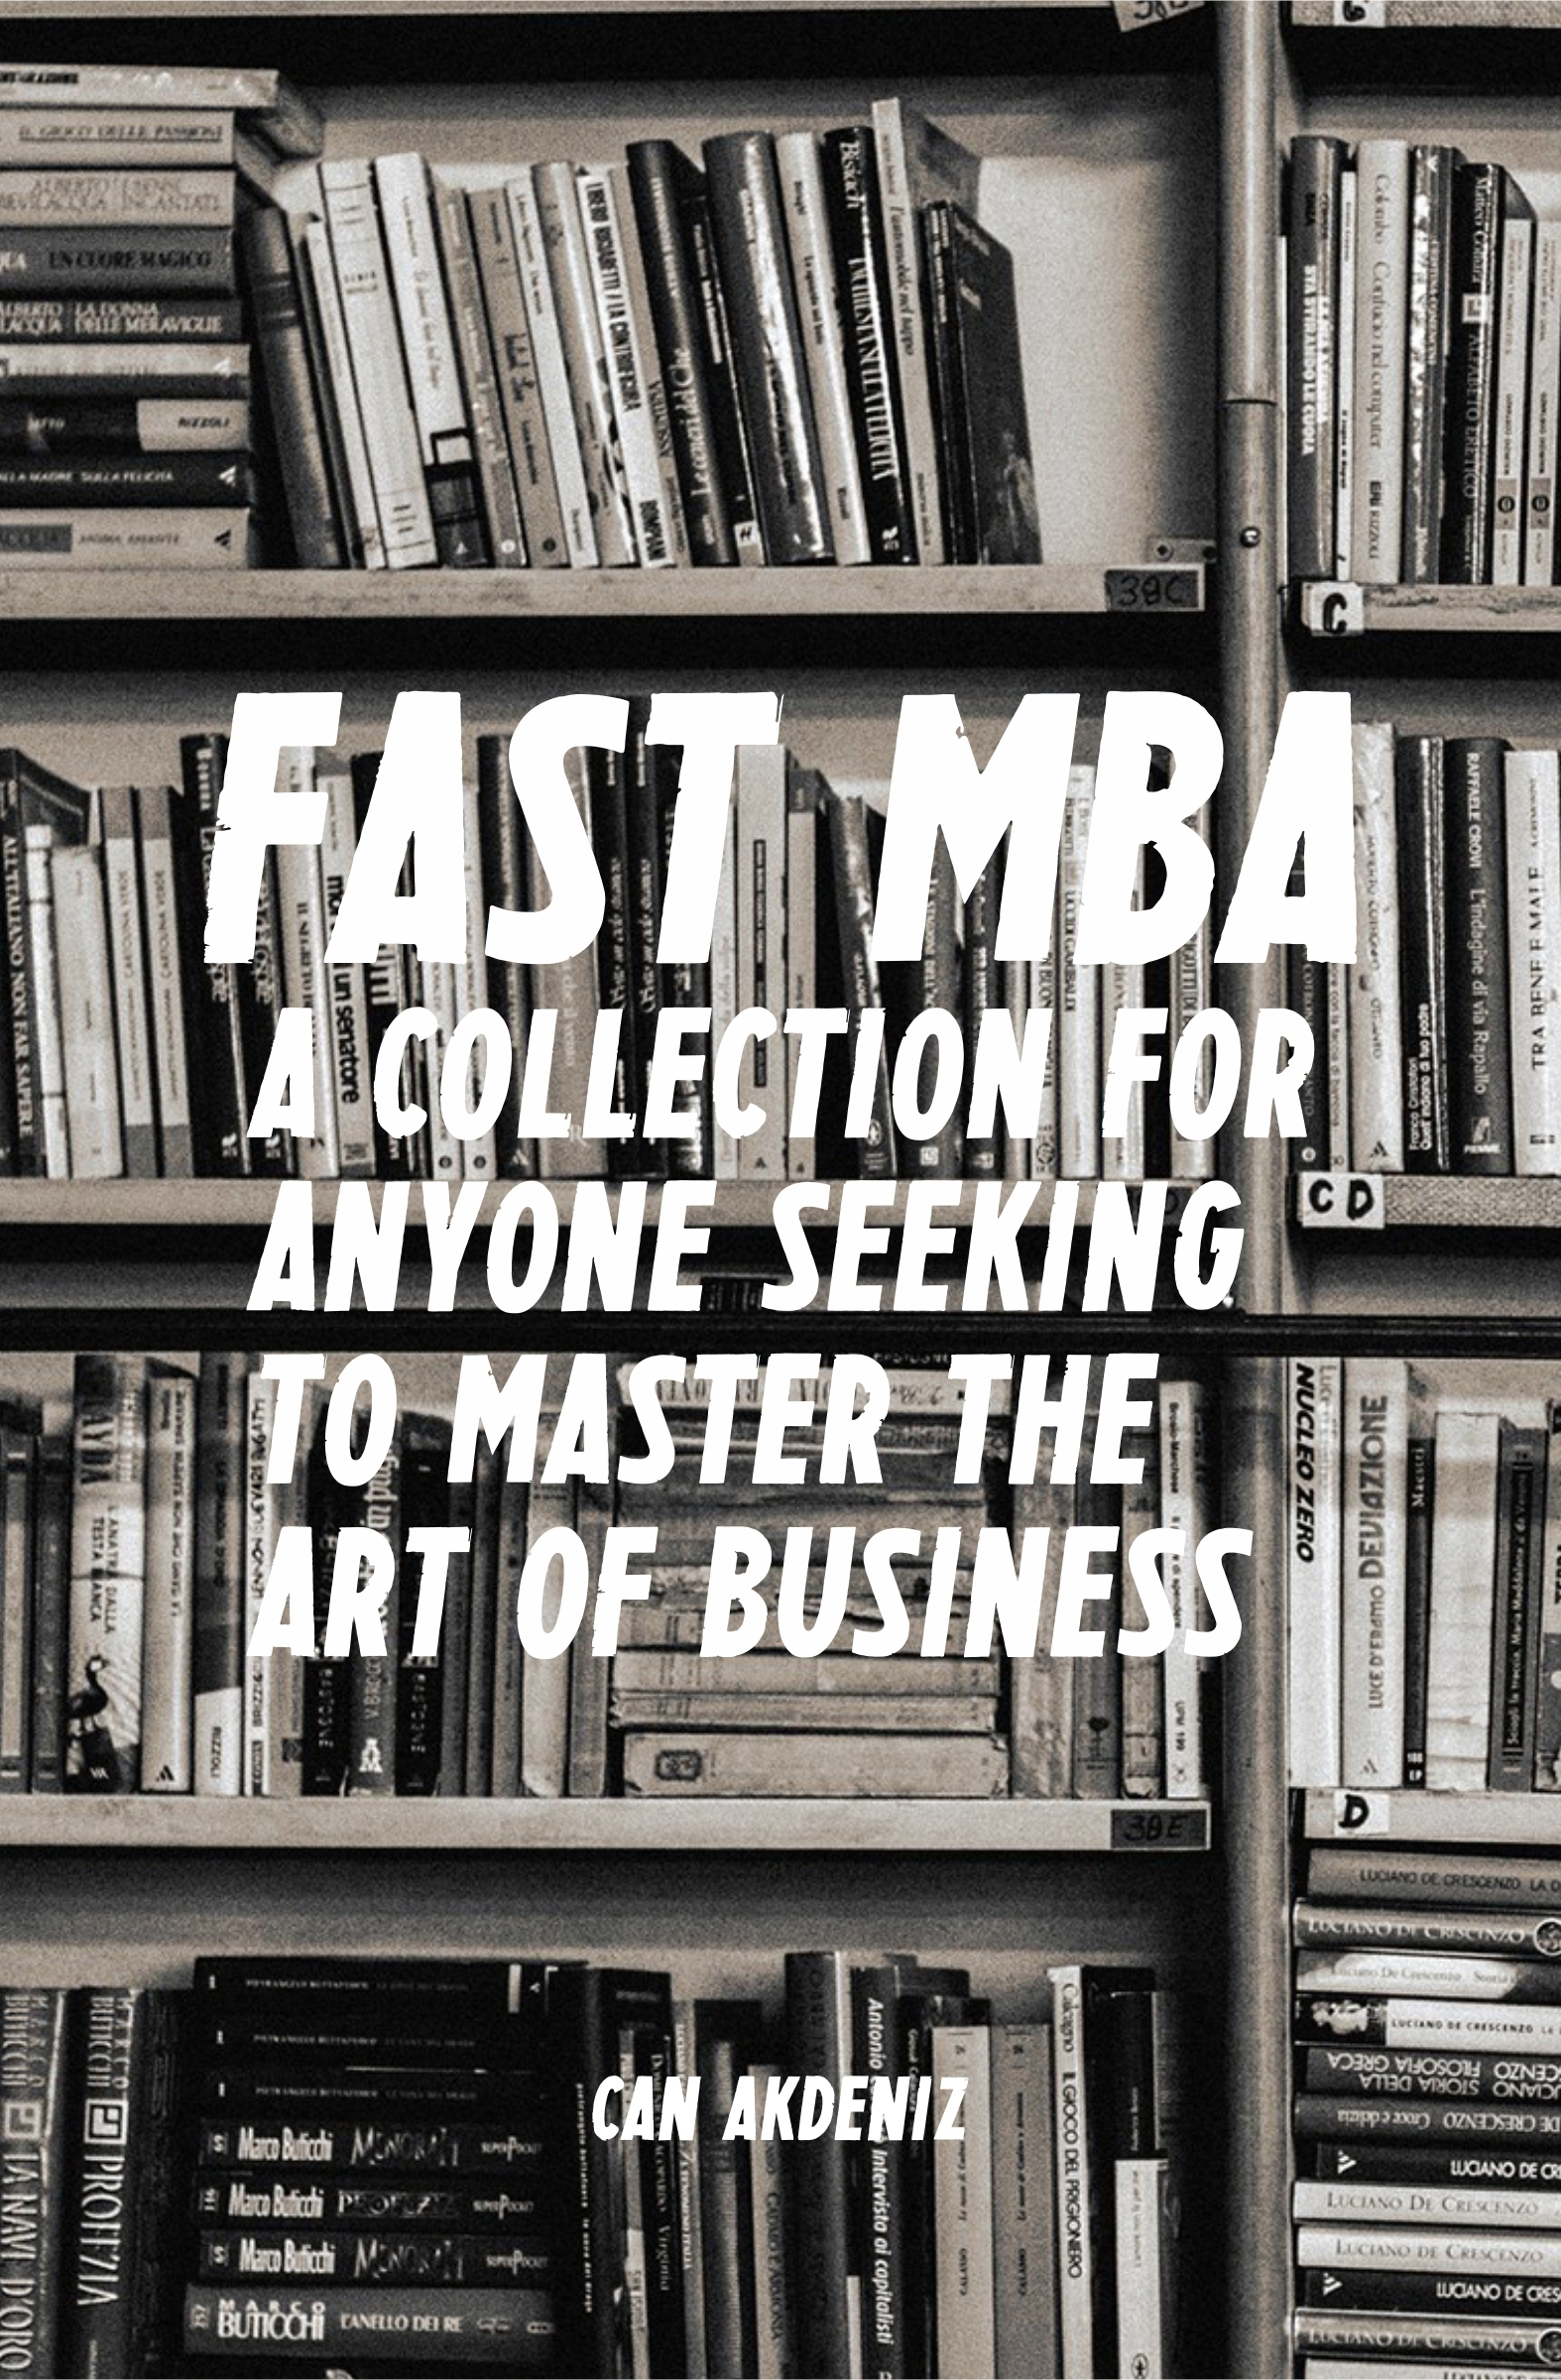 Fast MBA: A 4-Book Collection for Anyone Seeking to Master the Art of Business (Best Business Books 12) Can Akdeniz